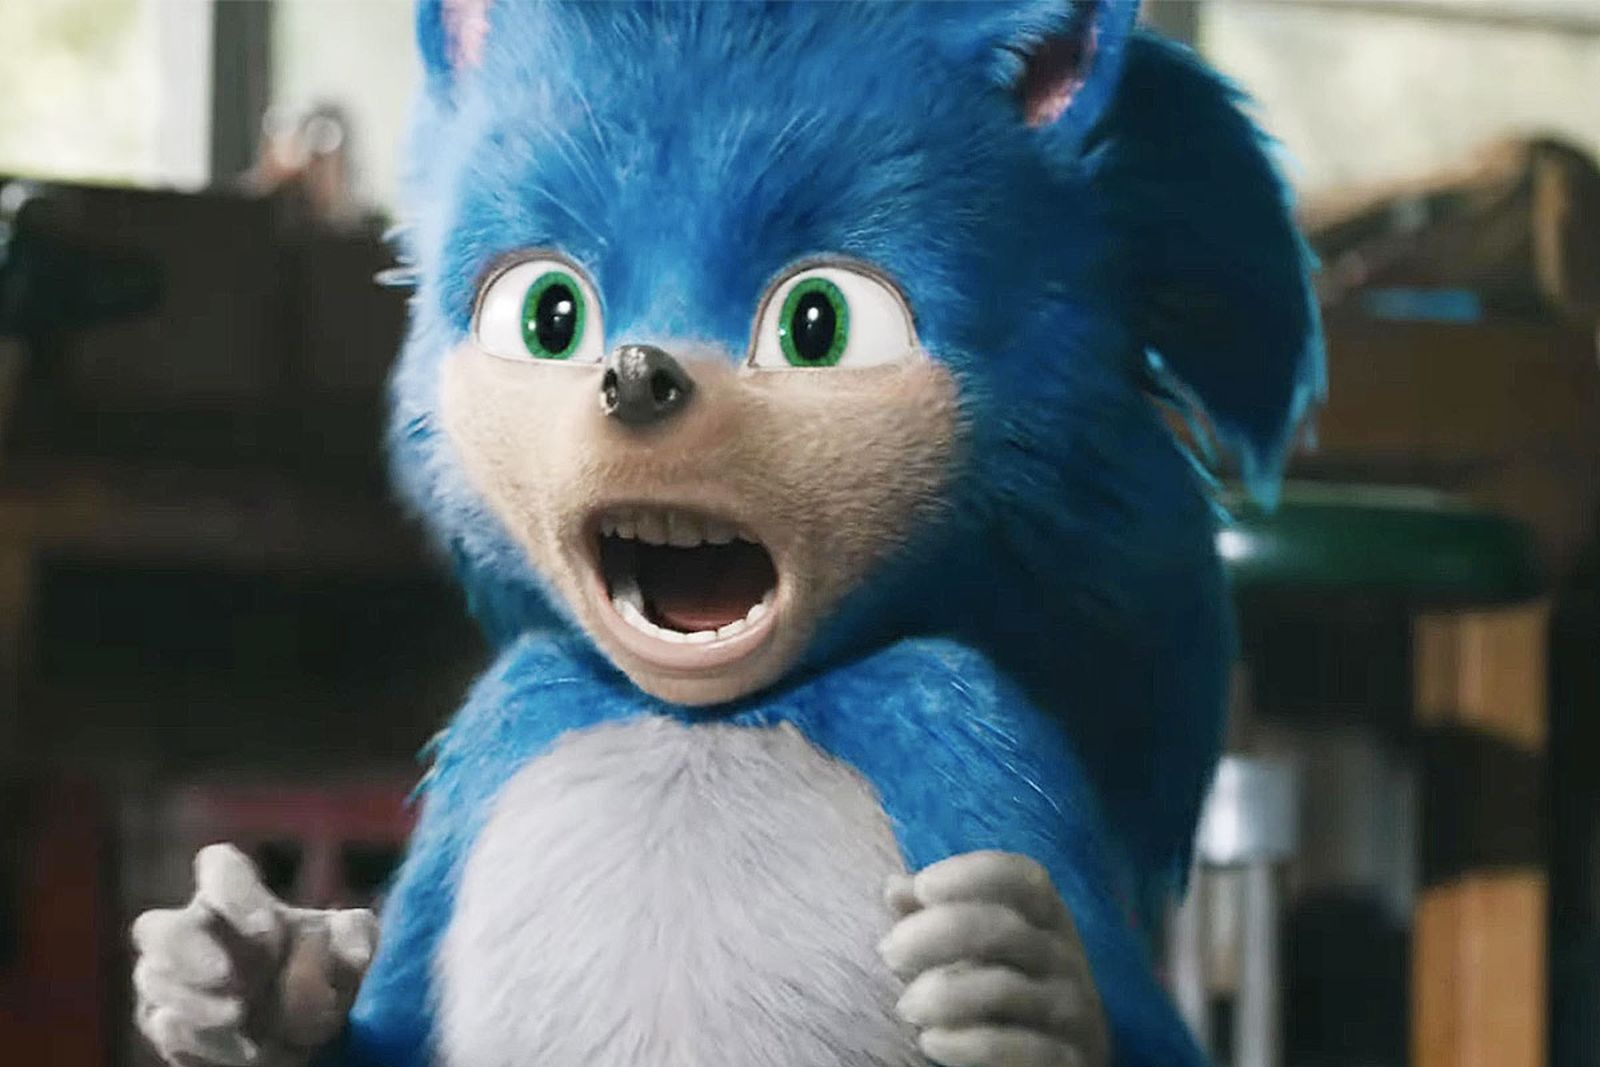 sonic the hedgehog will be fixed